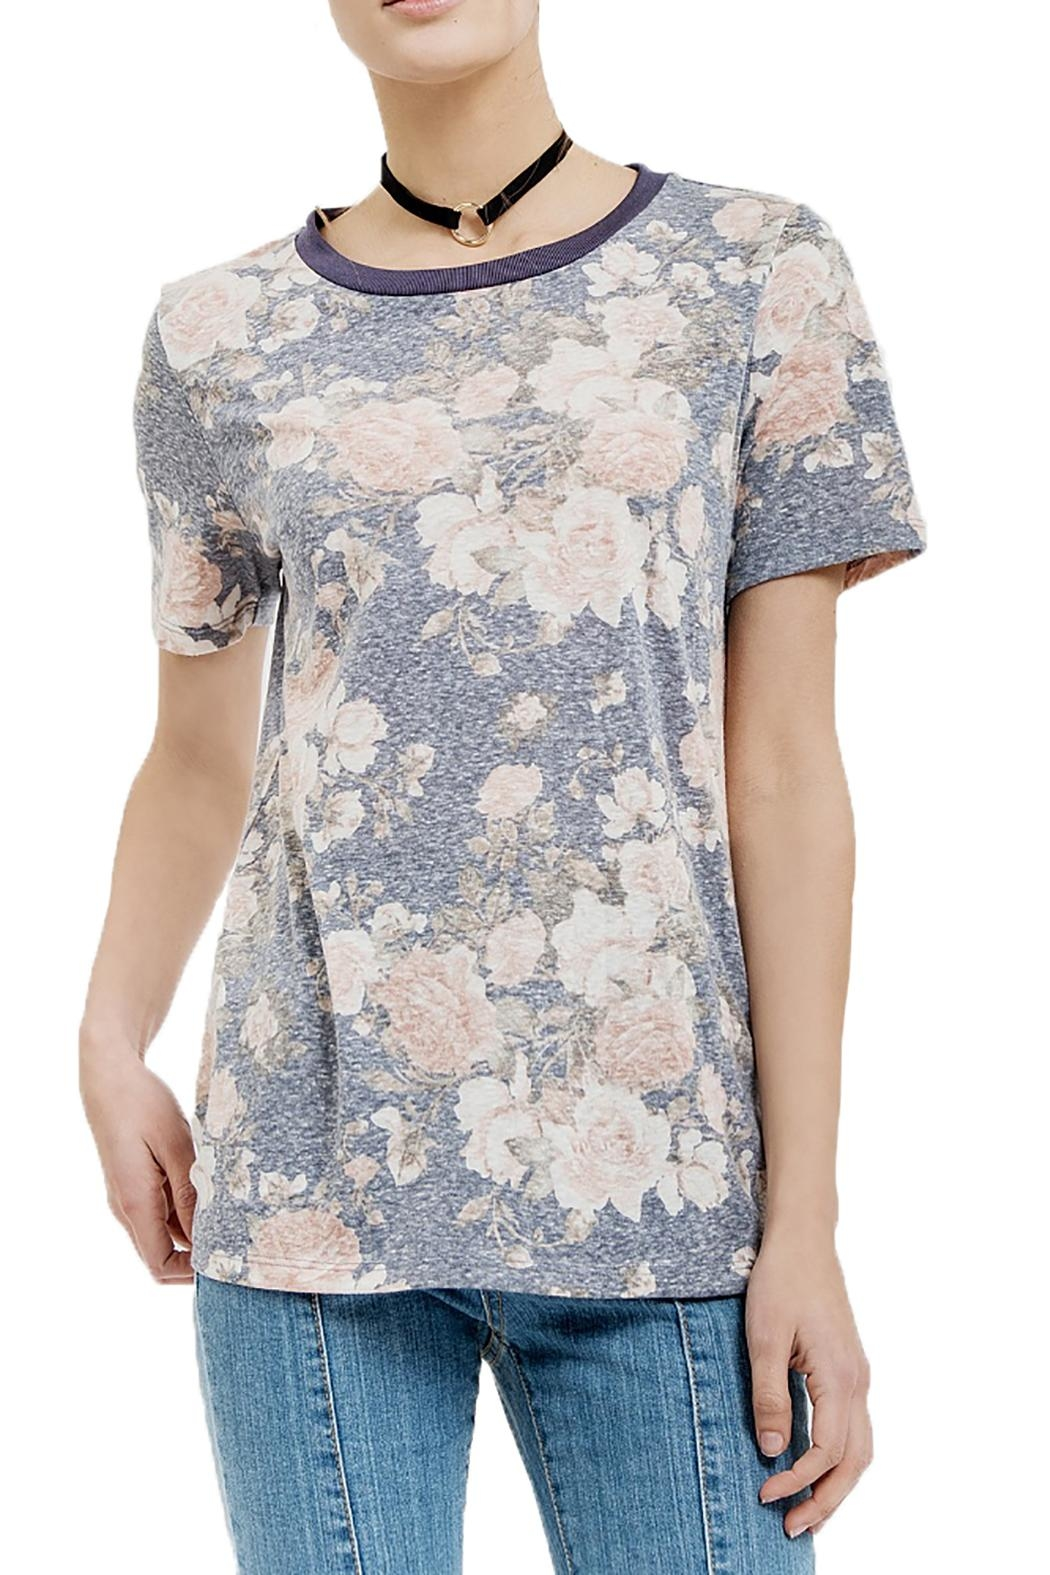 Blu Pepper Rose Knit Top - Front Cropped Image